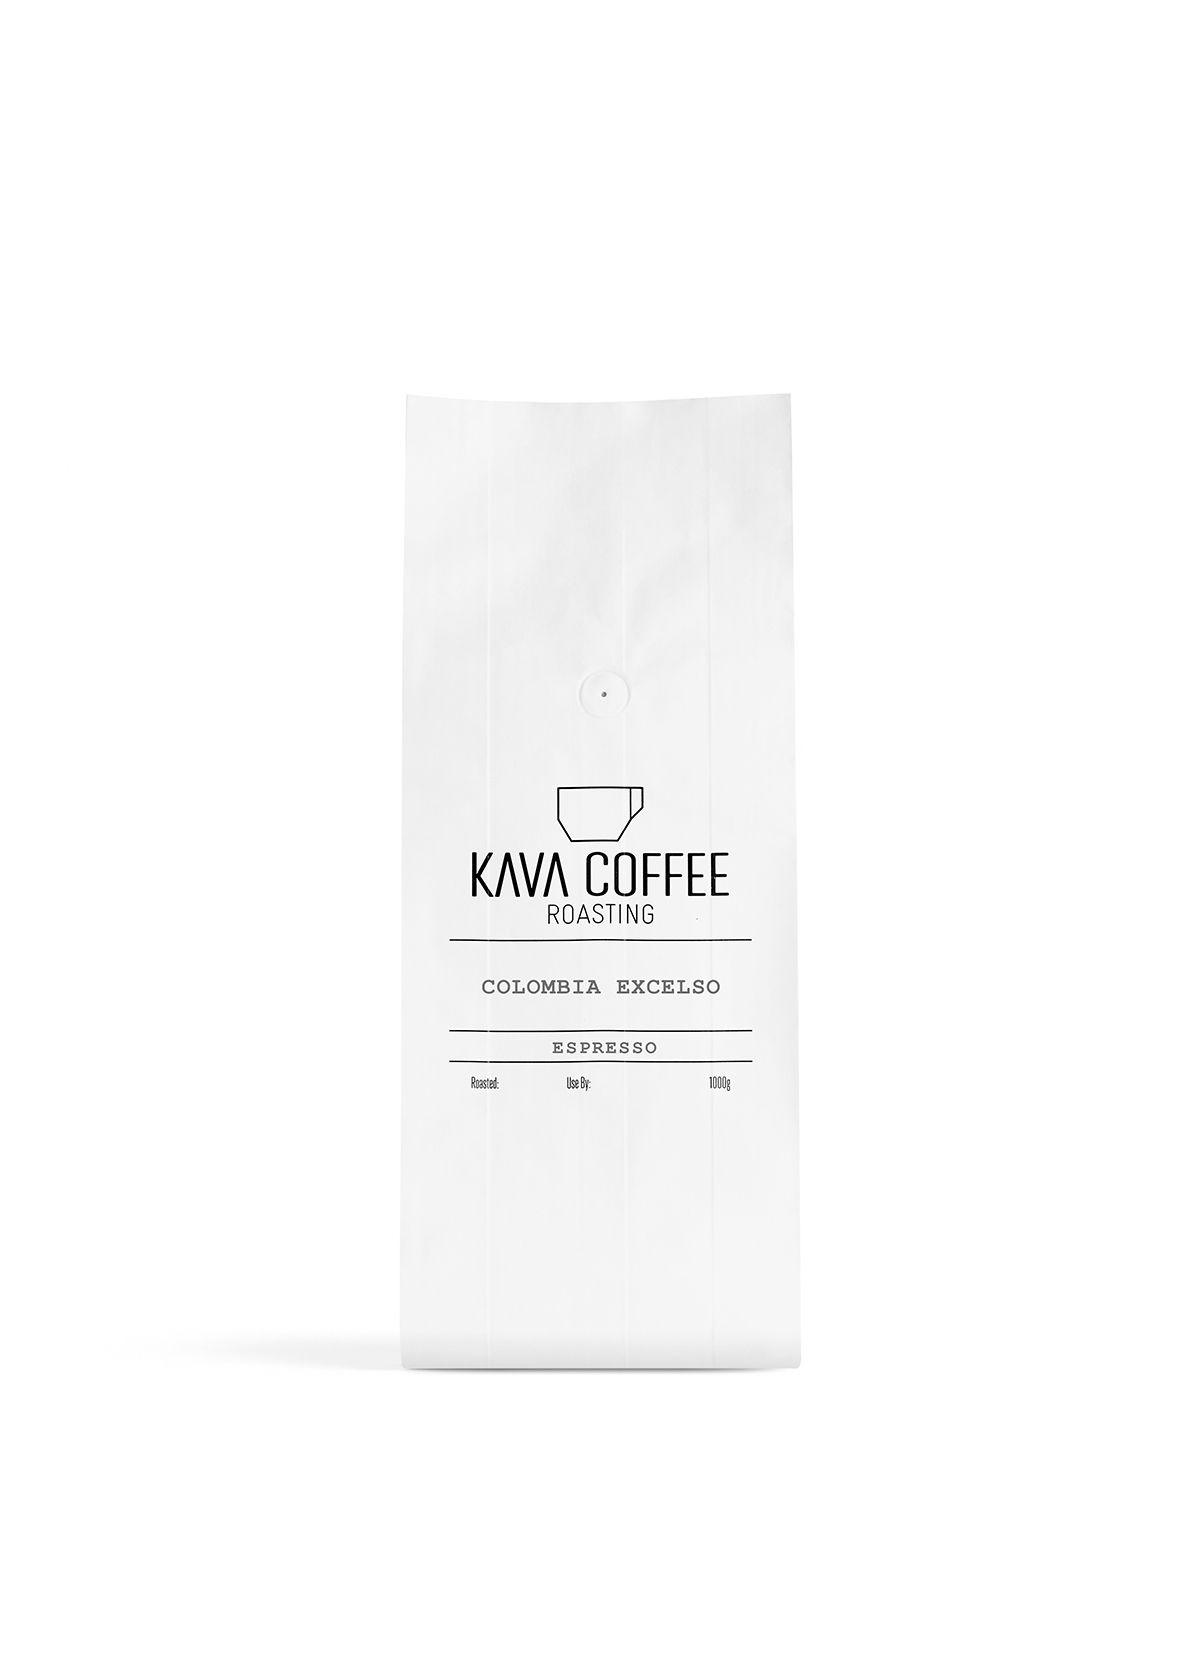 Colombia Excelso Espresso 1 kg